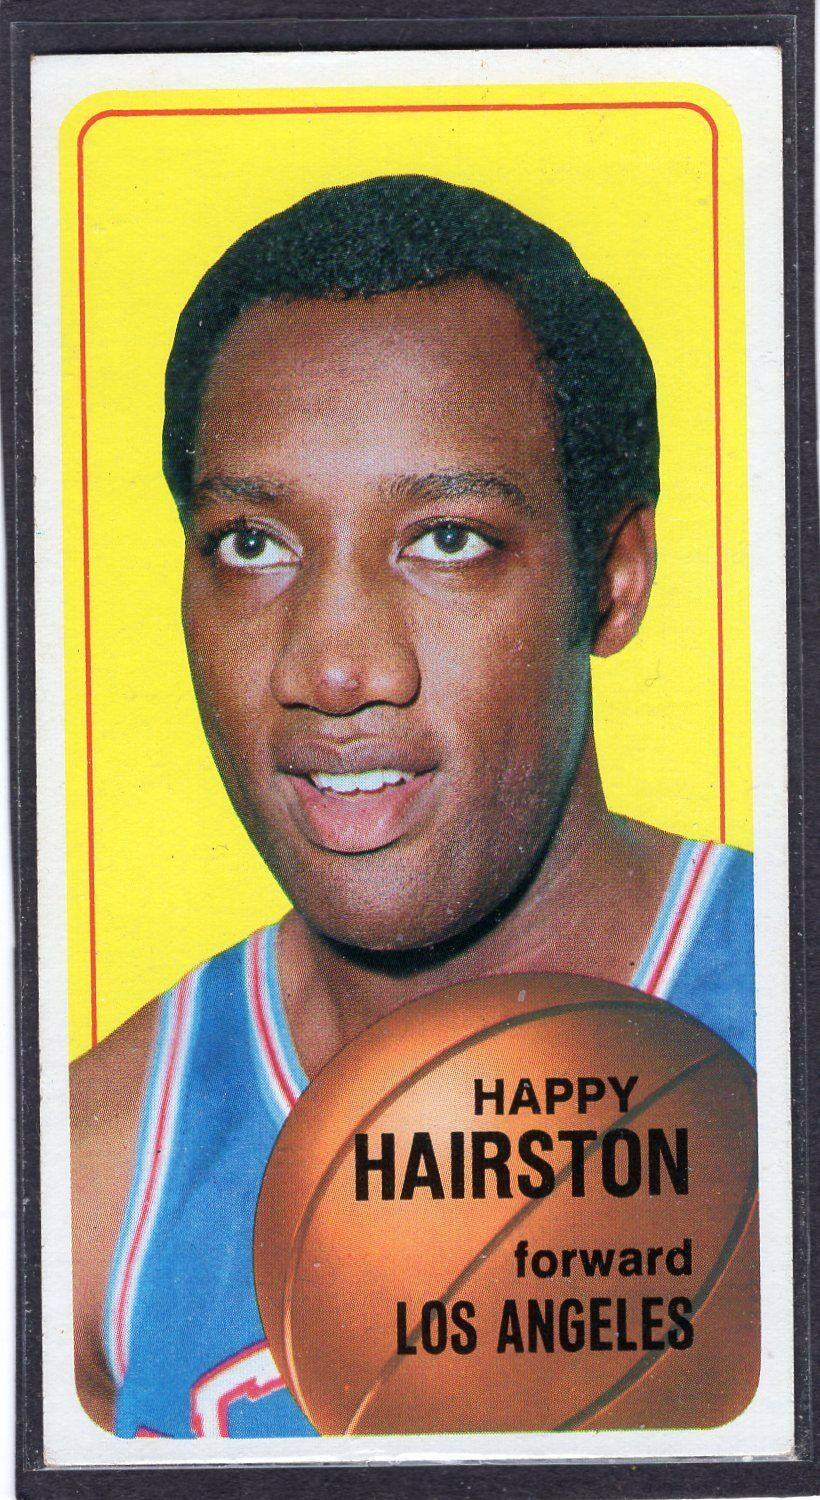 1970 Topps Happy Hairston 77 Basketball Card